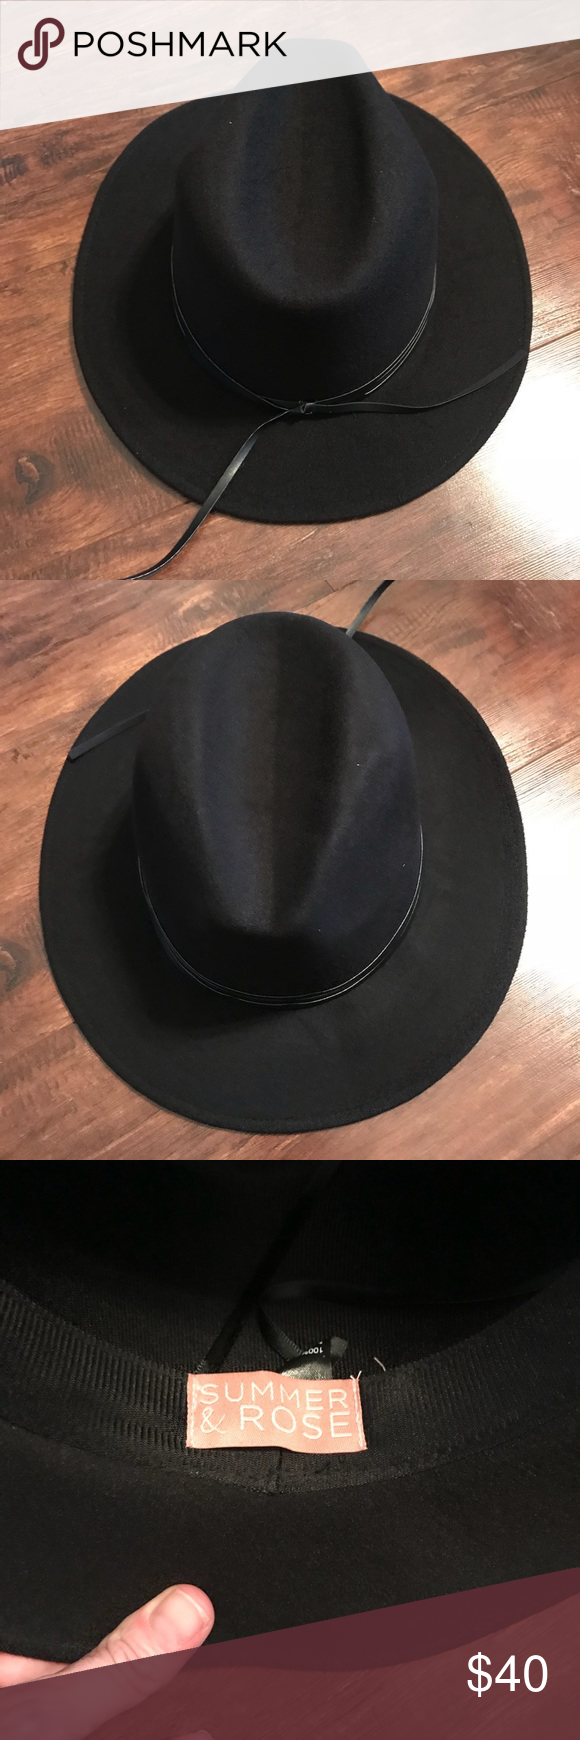 3ffa3ad1f78fe Brand new summer and rose black felt hat Perfect for festival season or all  year round summer and rose Accessories Hats